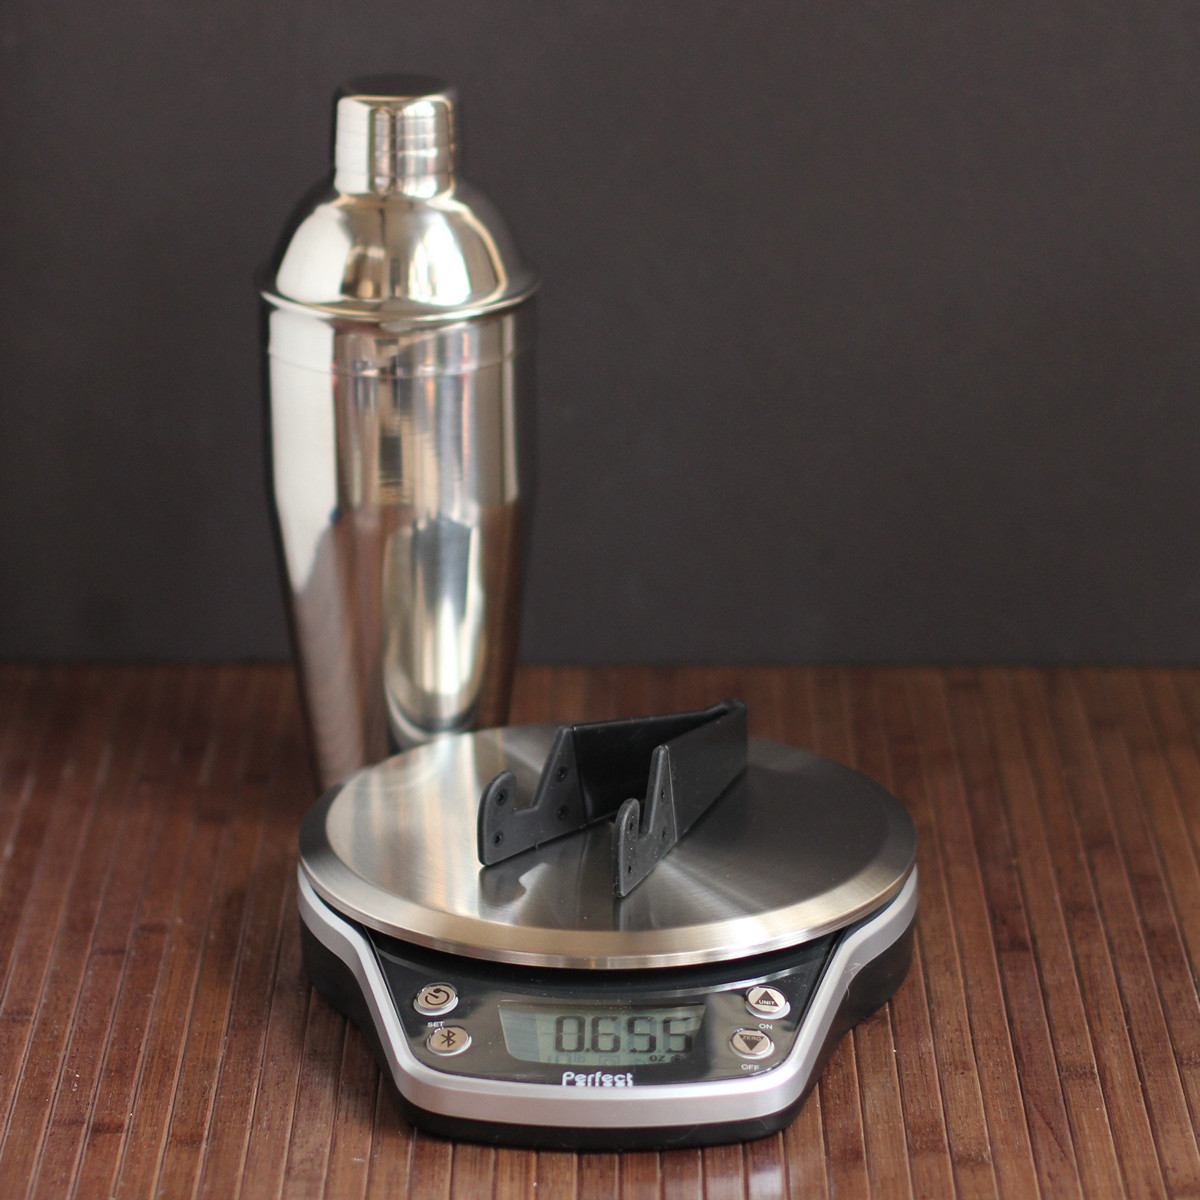 Cookistry 39 s kitchen gadget and food reviews perfect drink for Perfect drink pro review